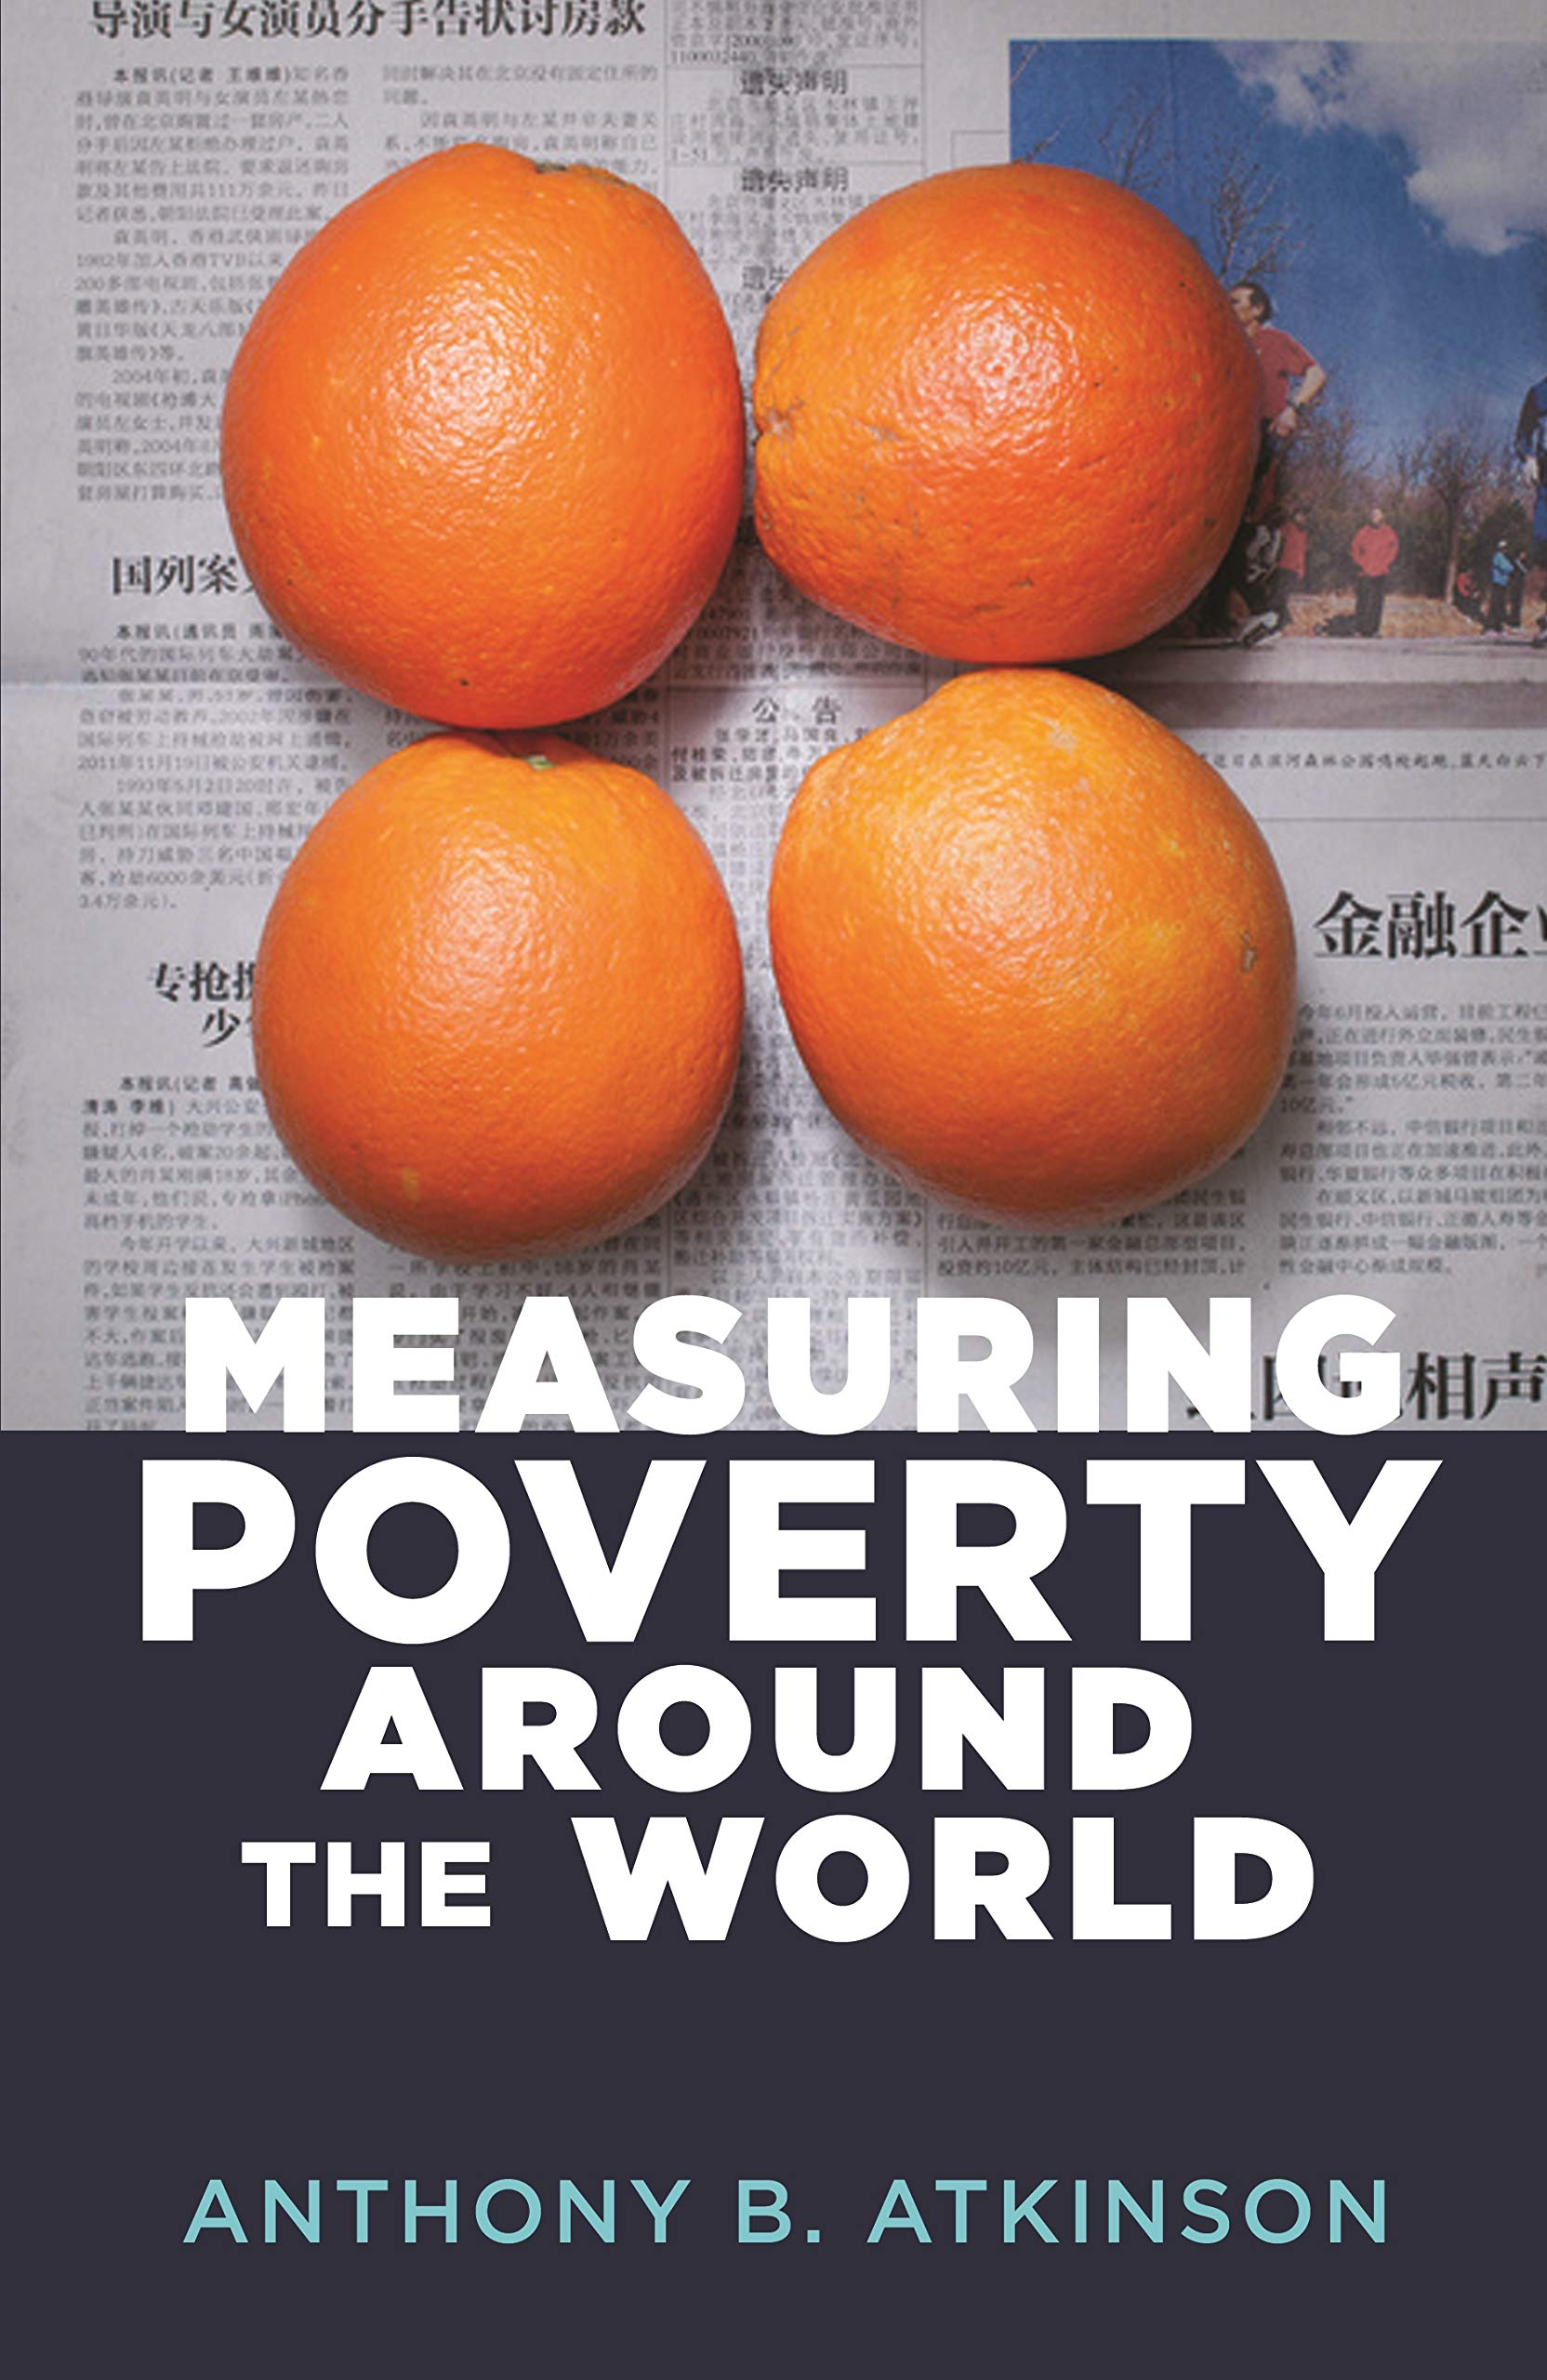 Measuring Poverty Around the World, Anthony B. Atkinson